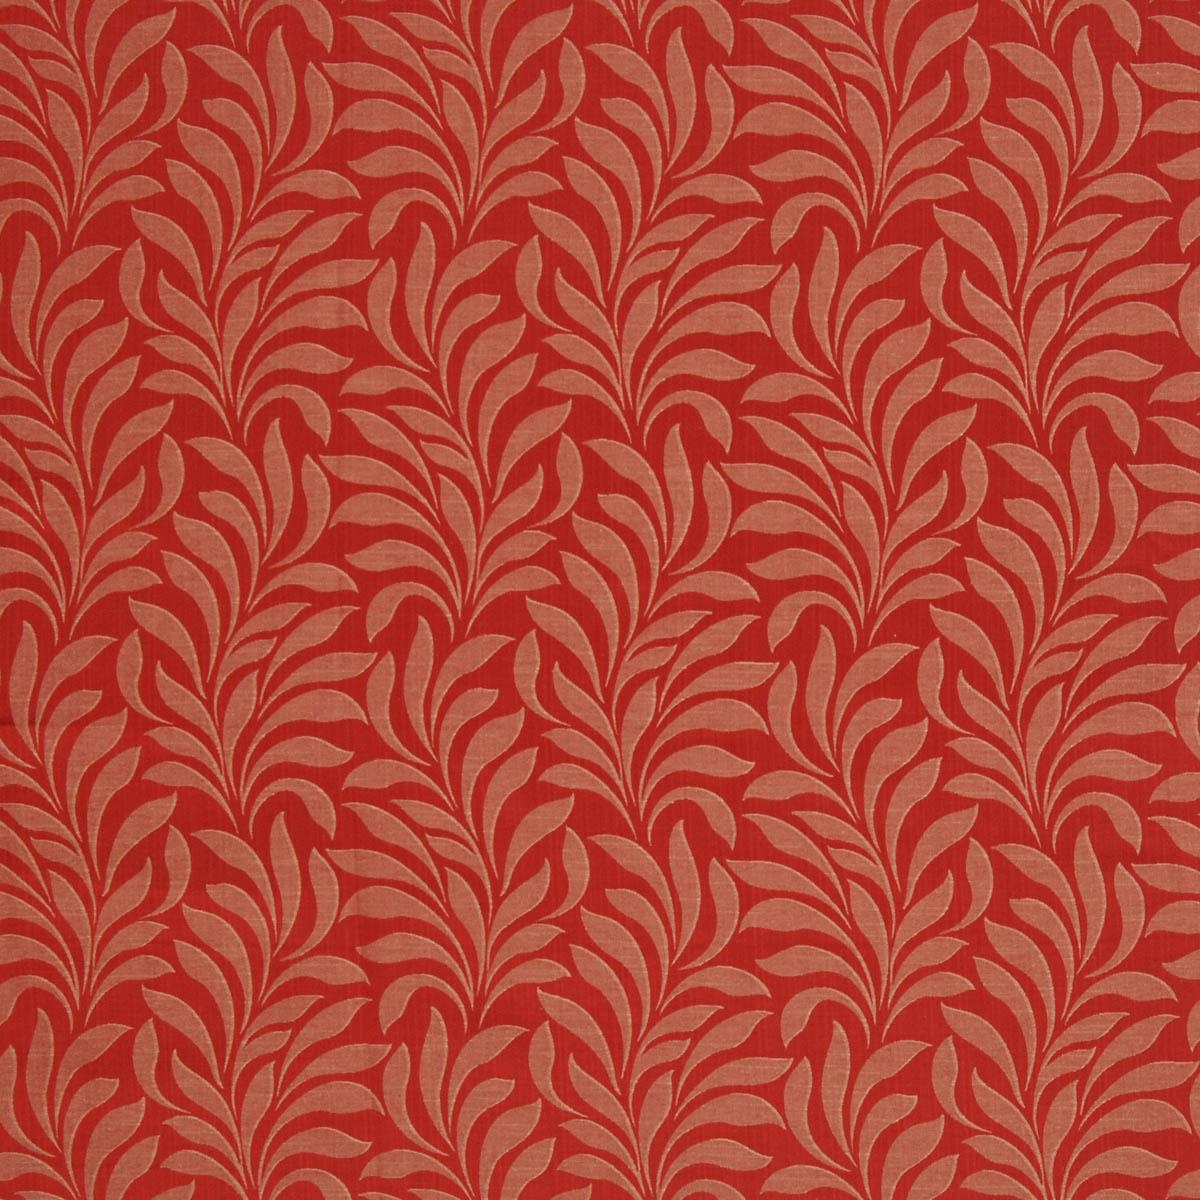 Jacquards And Damask Currtain Fabrics Order Free Samples Inside Heavy Curtain Material (Photo 11 of 15)